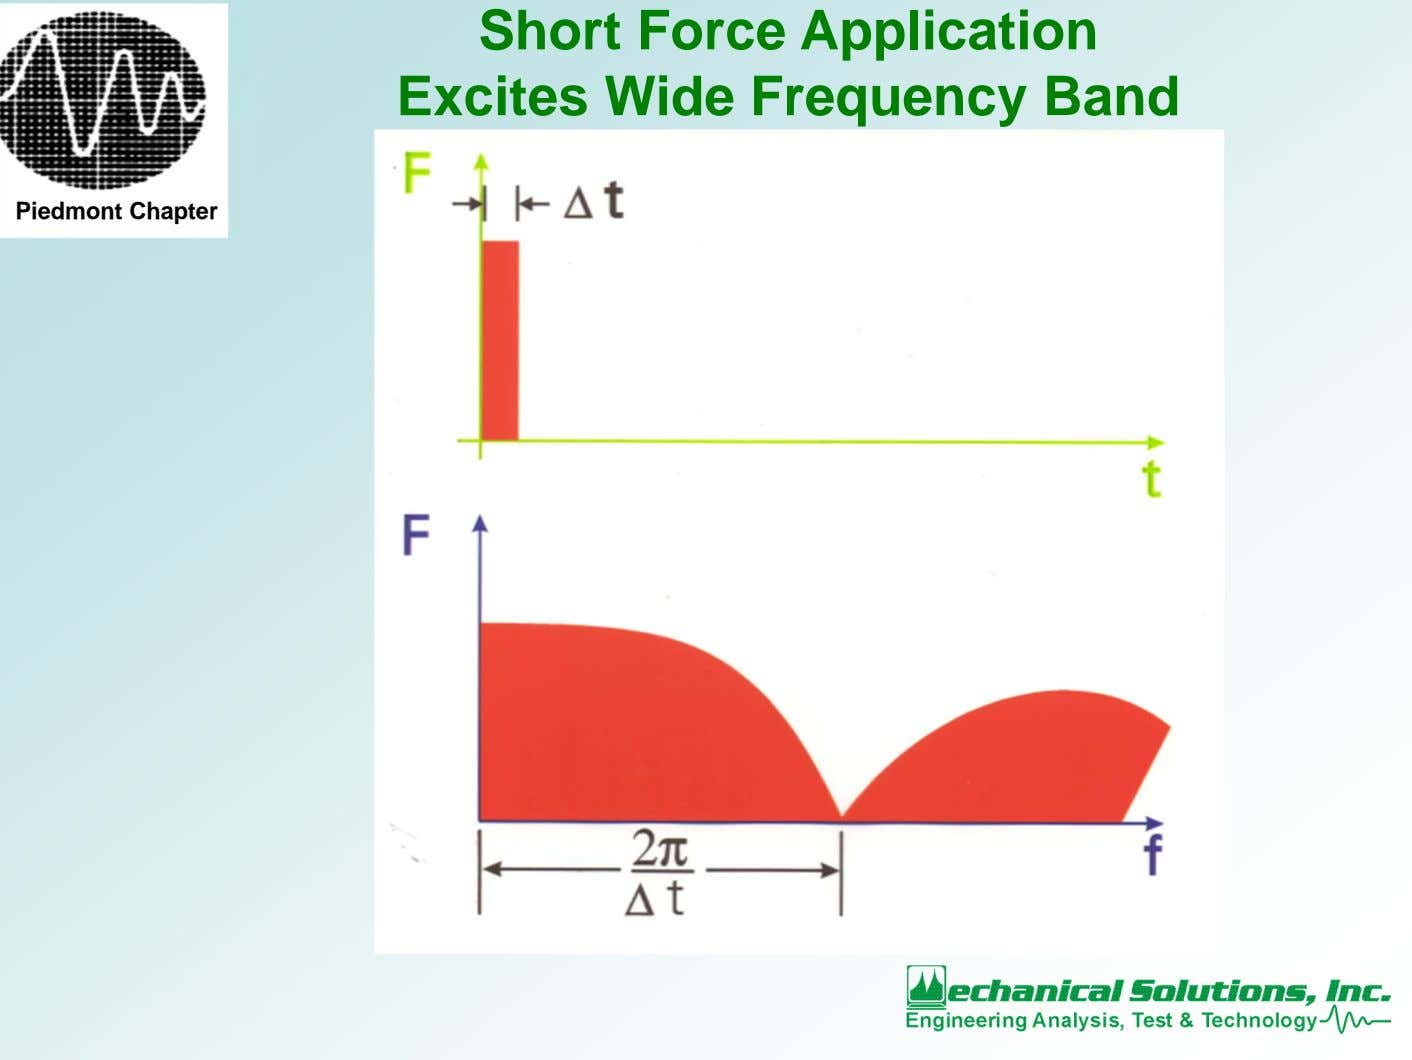 Short Force Application Excites Wide Frequency Band Piedmont Chapter